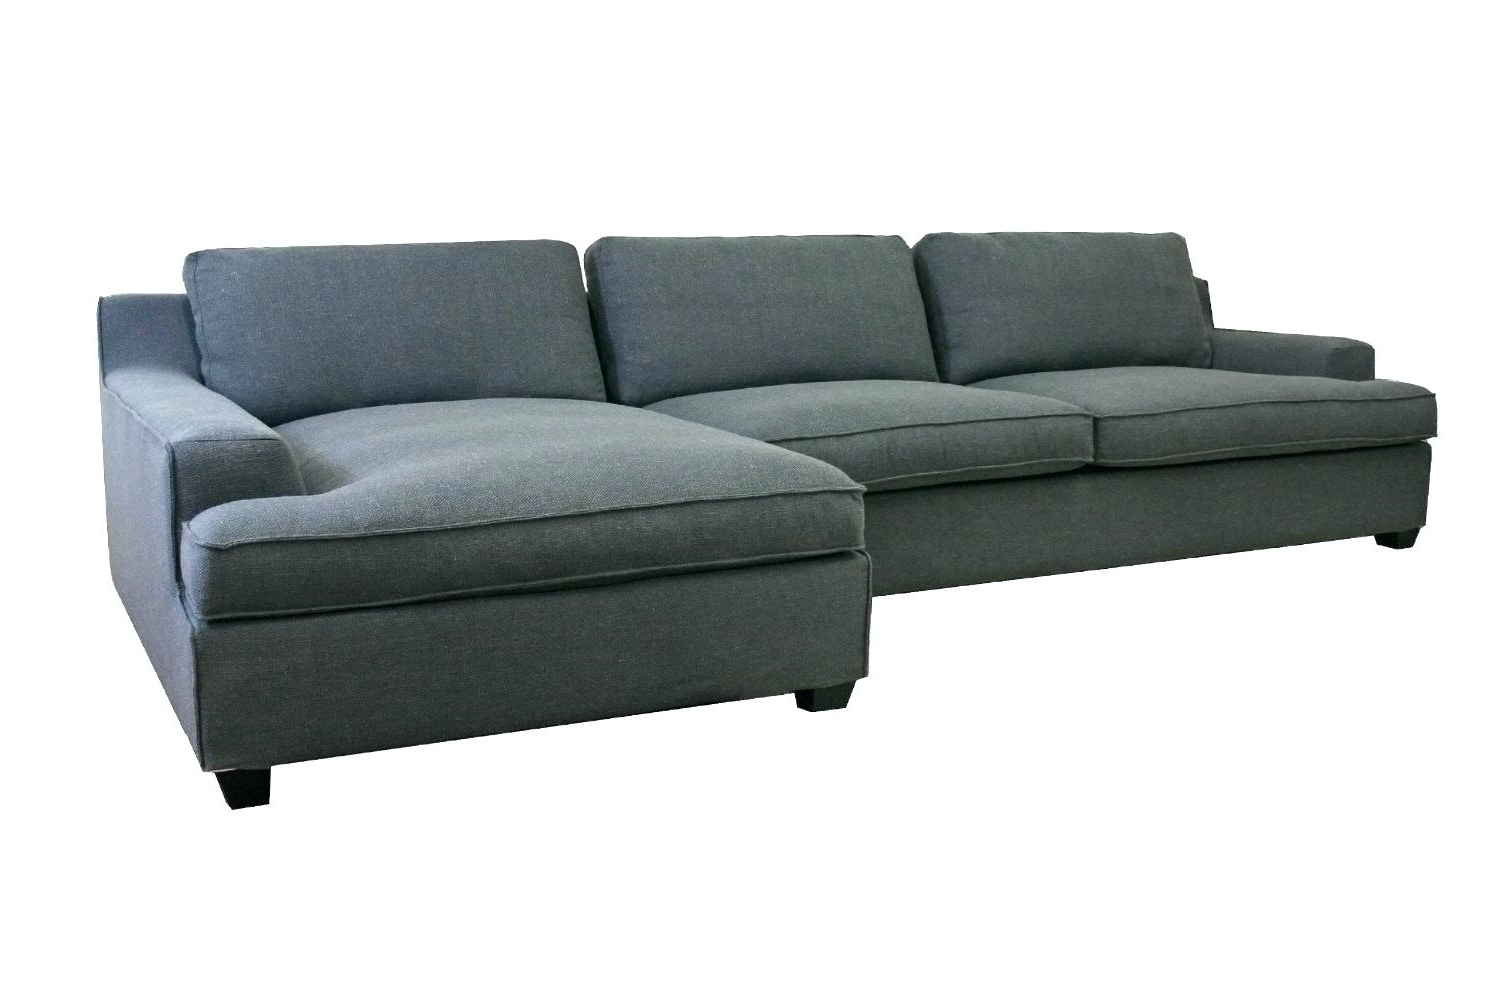 Lounge Furniture Rentals Orange County Couch For Sale Sofa Bed Intended For Current Orange County Sofas (View 12 of 20)